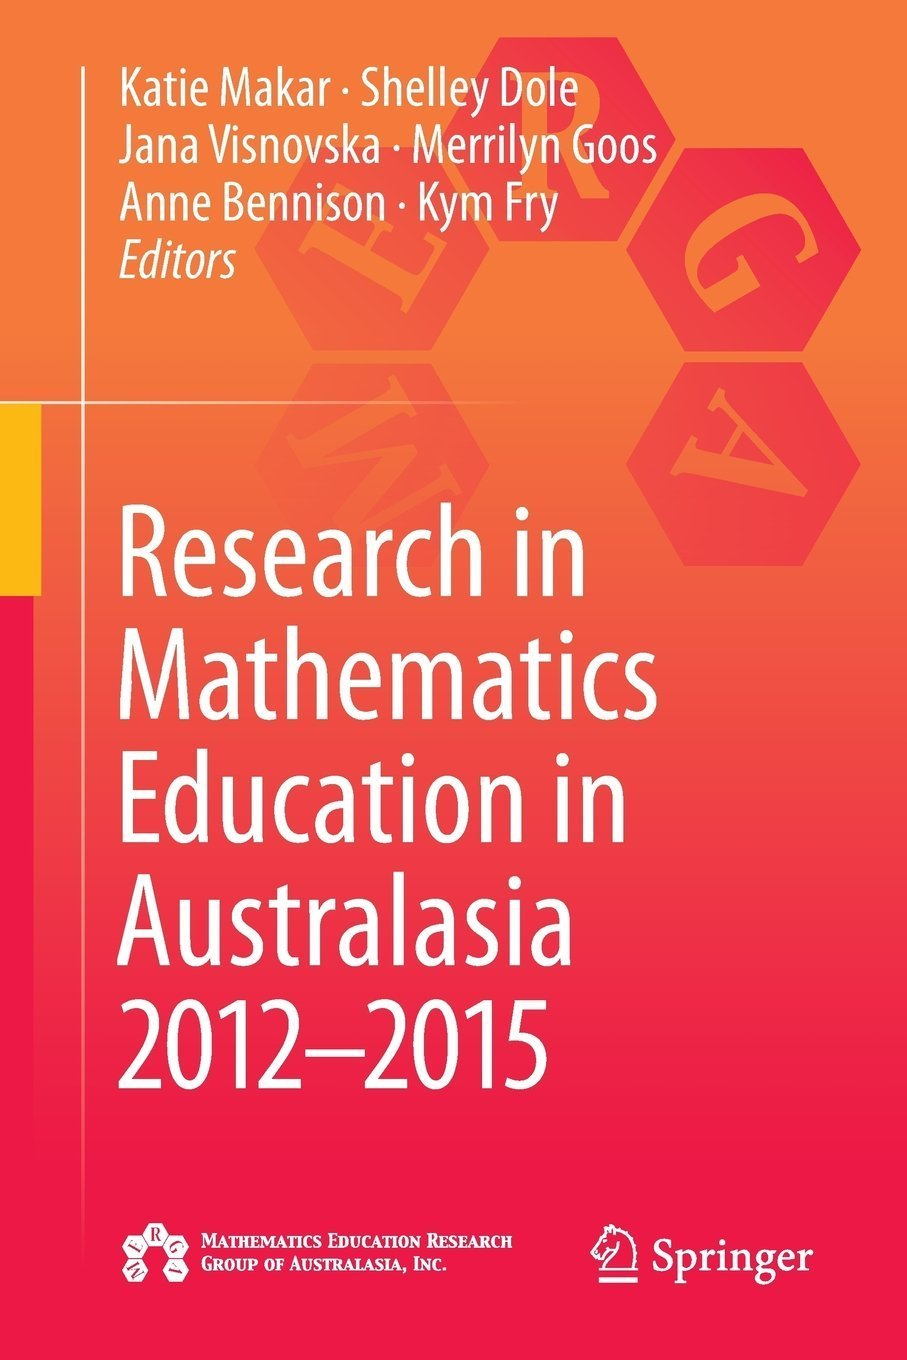 a research on manipulatives in education